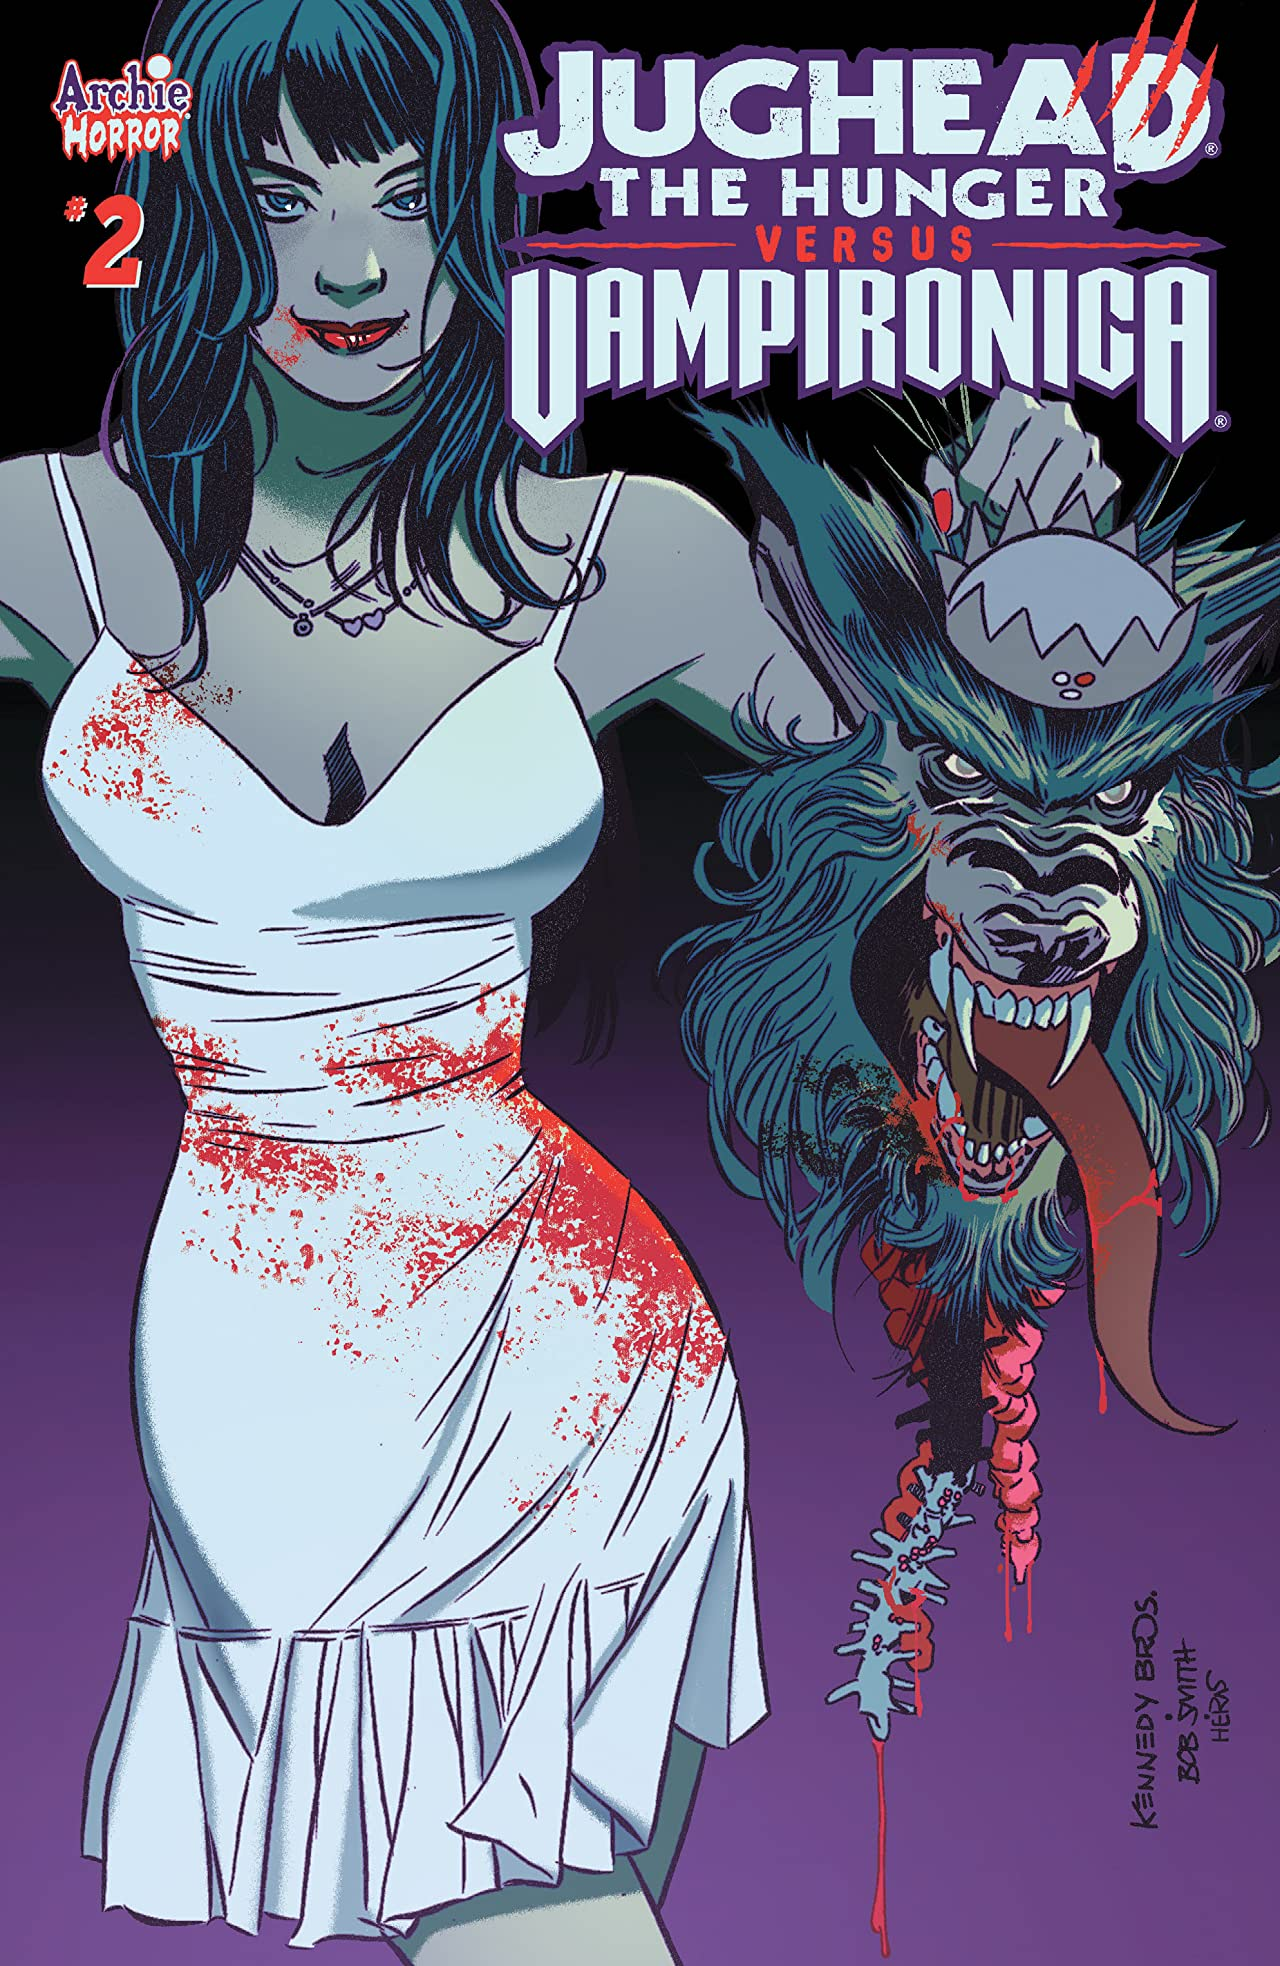 Jughead the Hunger vs Vampironica No.2